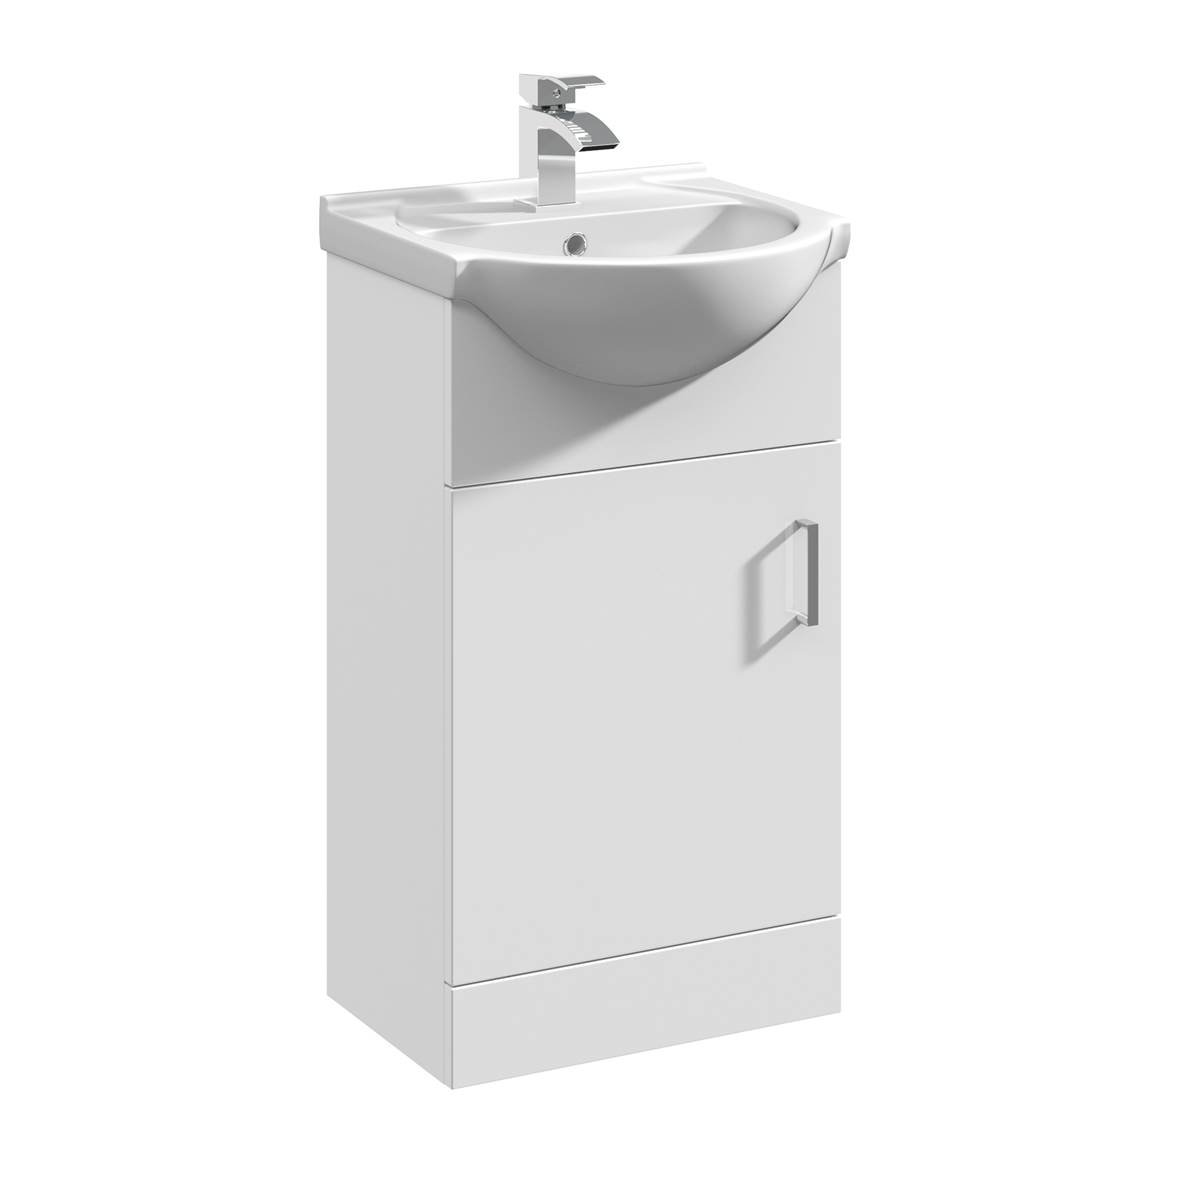 950mm Modular High Gloss White Bathroom Combination Vanity Basin ...